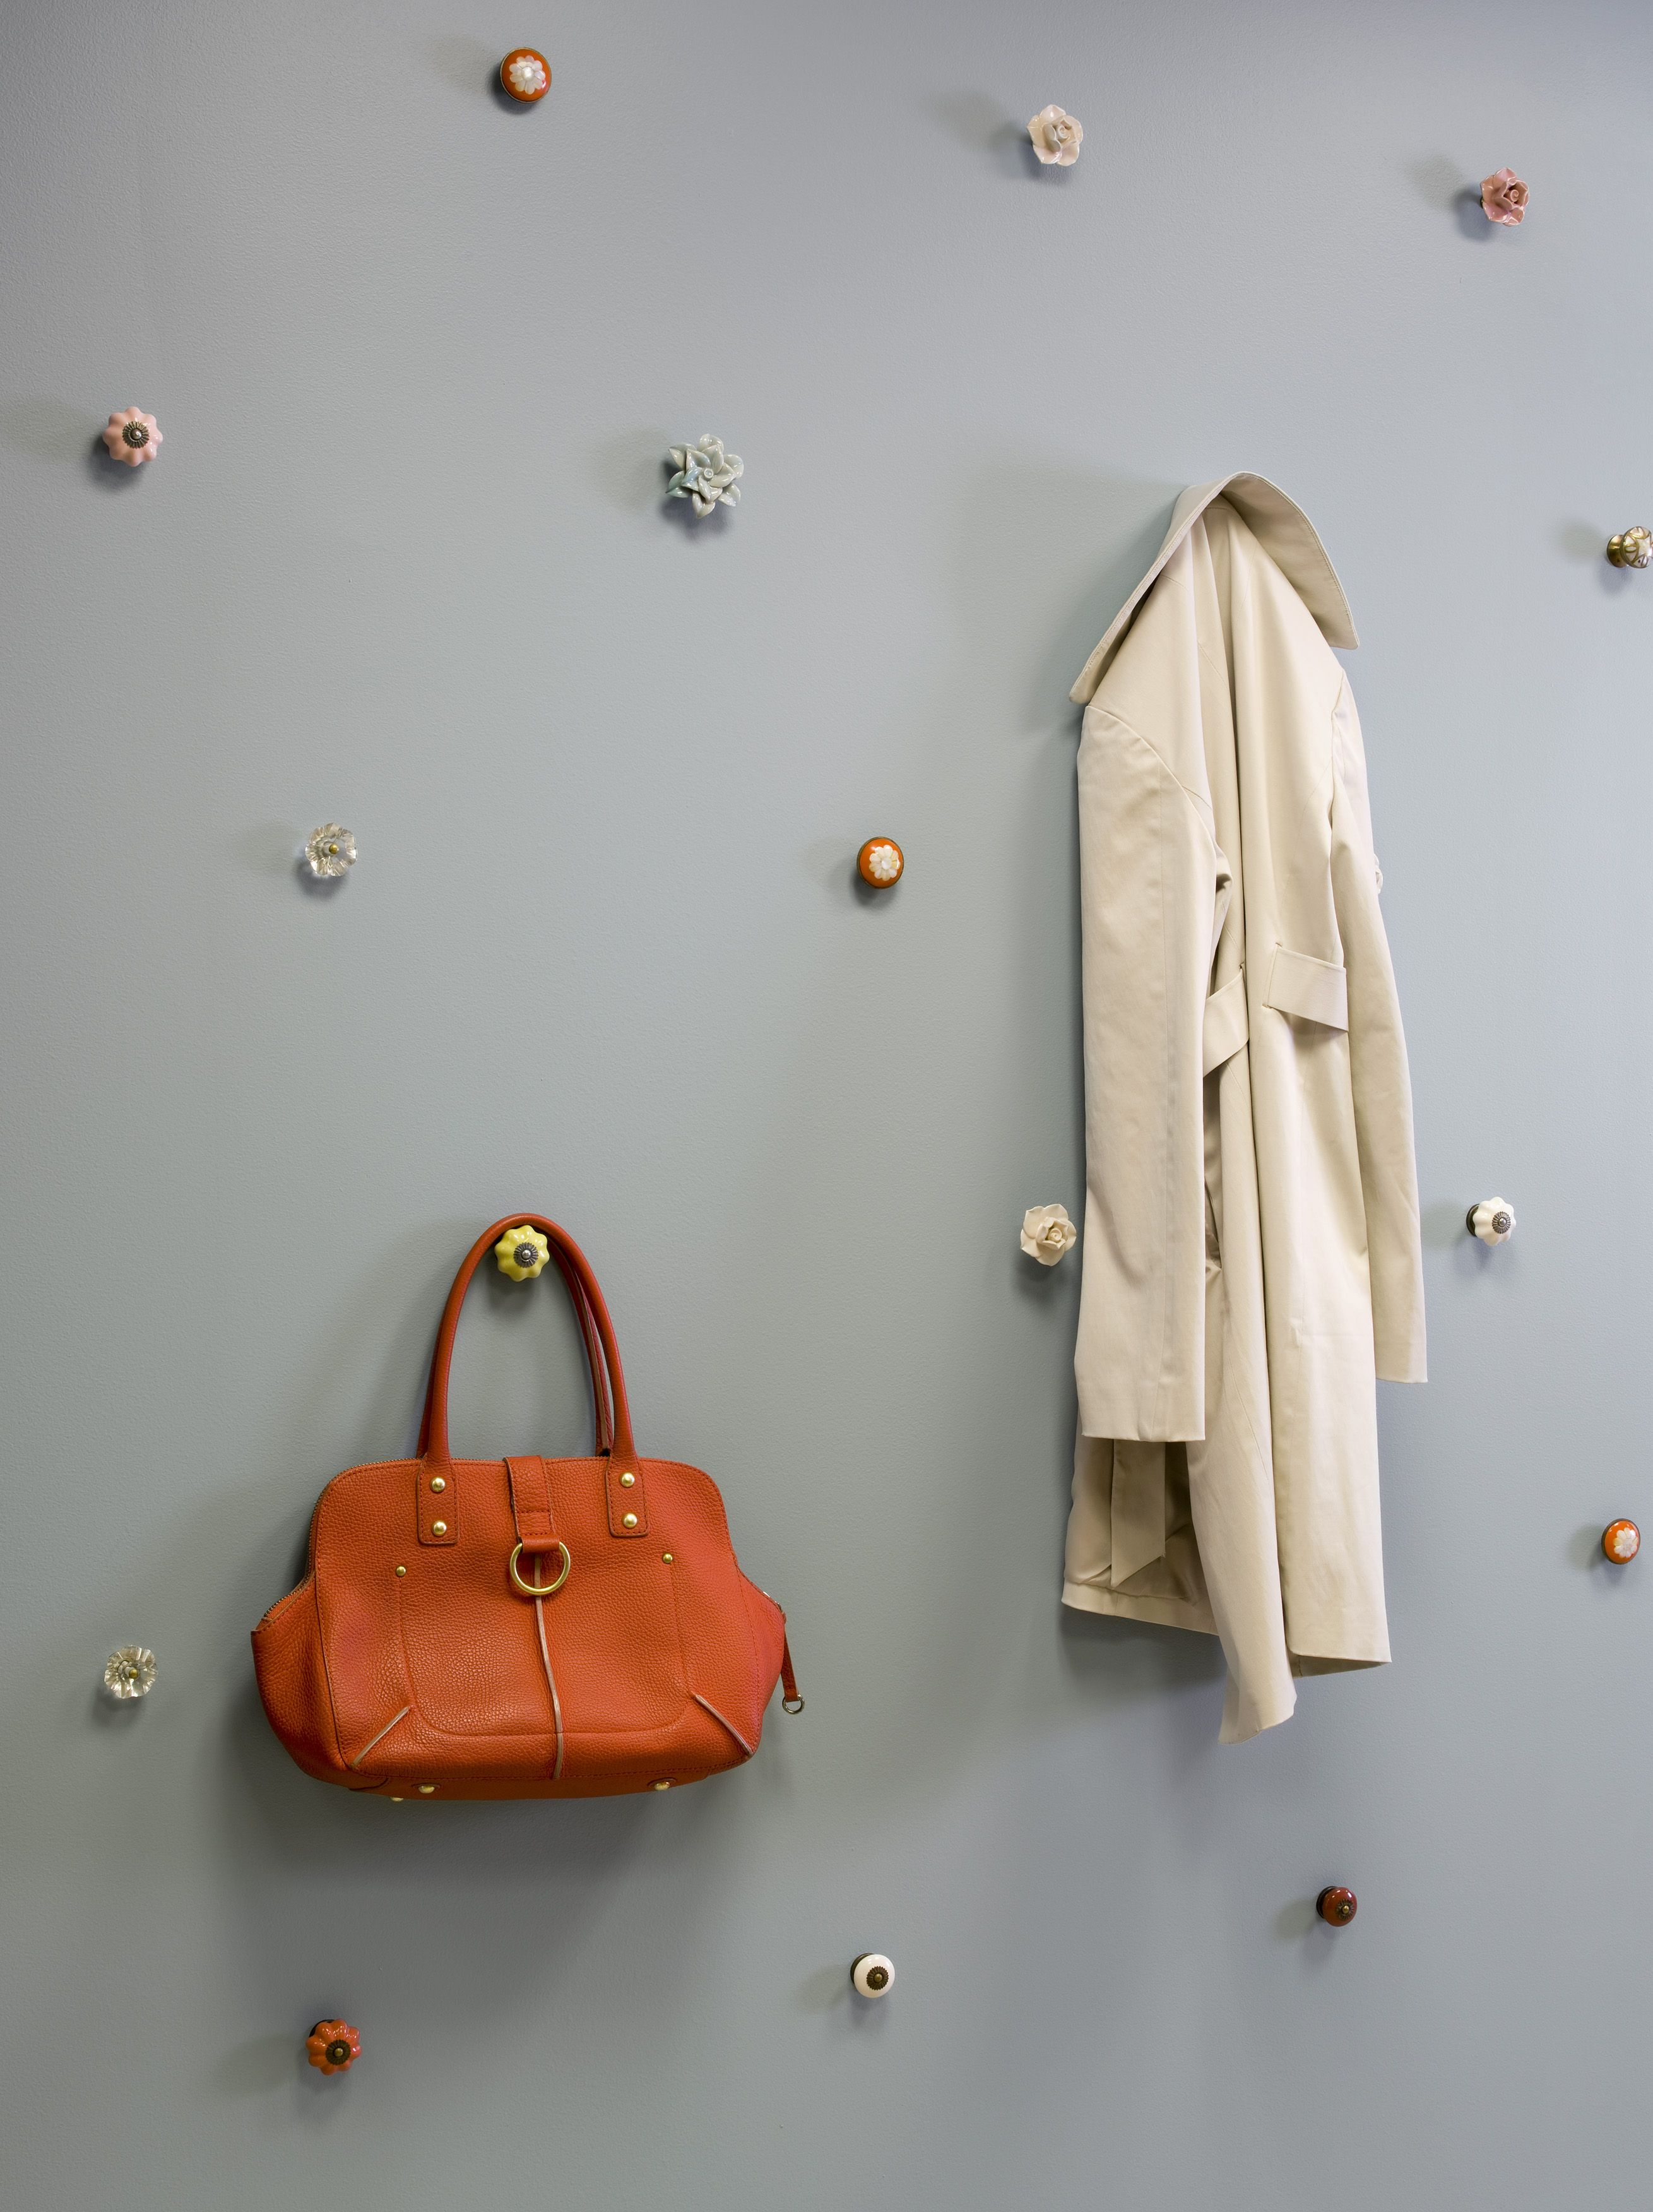 Hallway storage for coats  Wall of decorative knobs provides the perfect aesthetic solution for